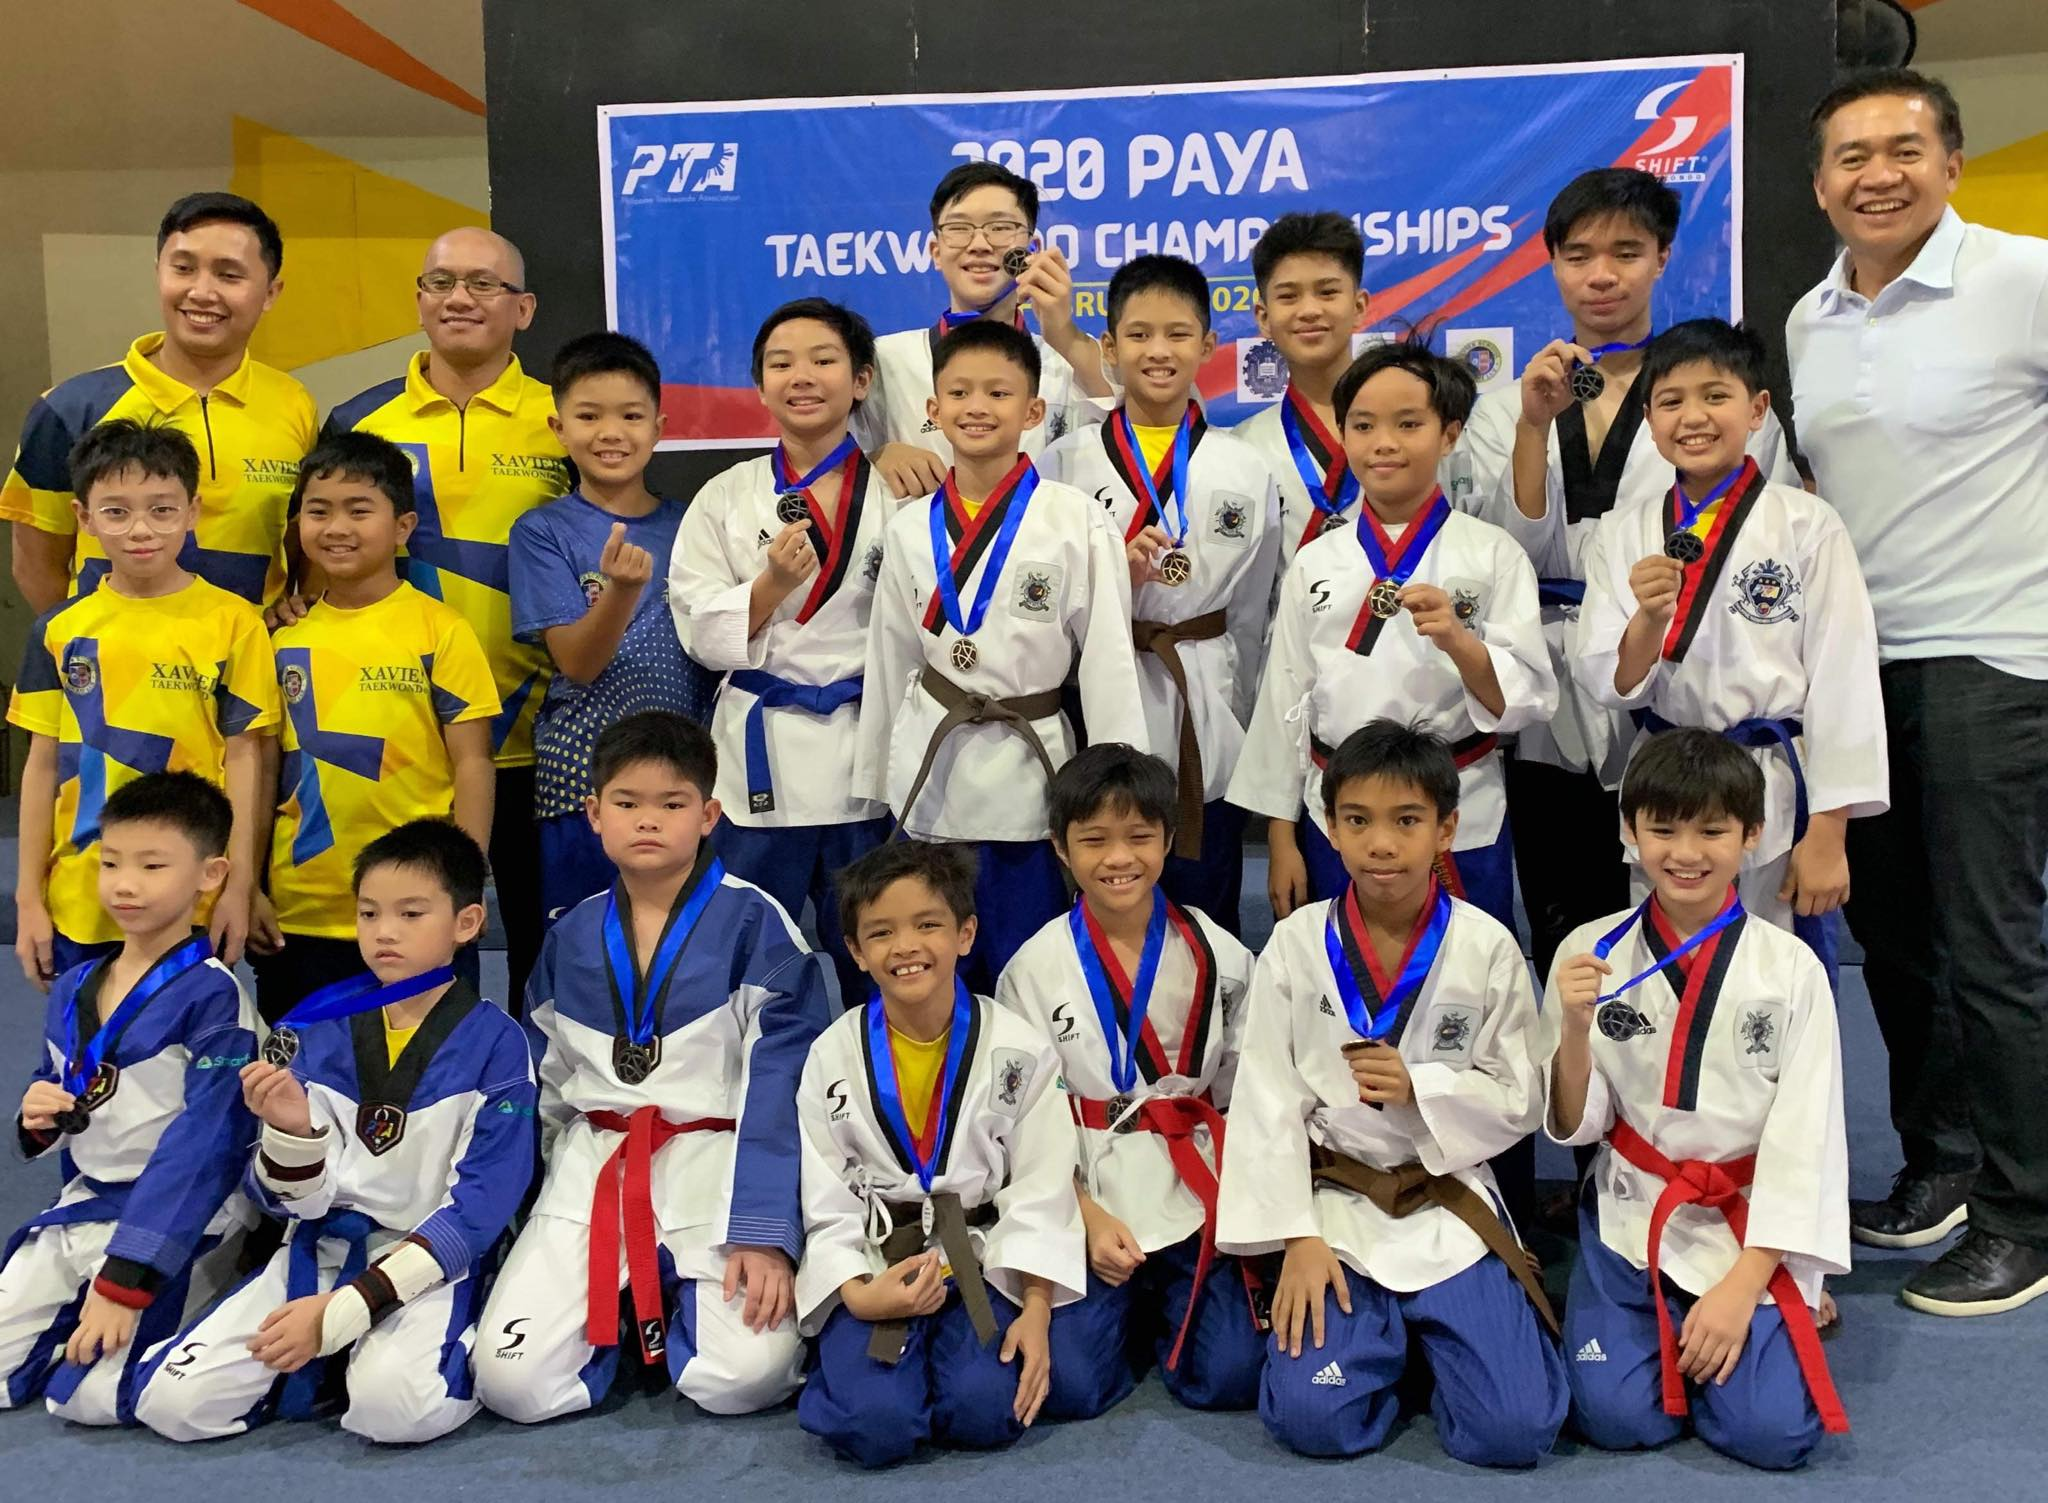 XS Jins take 2nd Overall in PAYA Championships